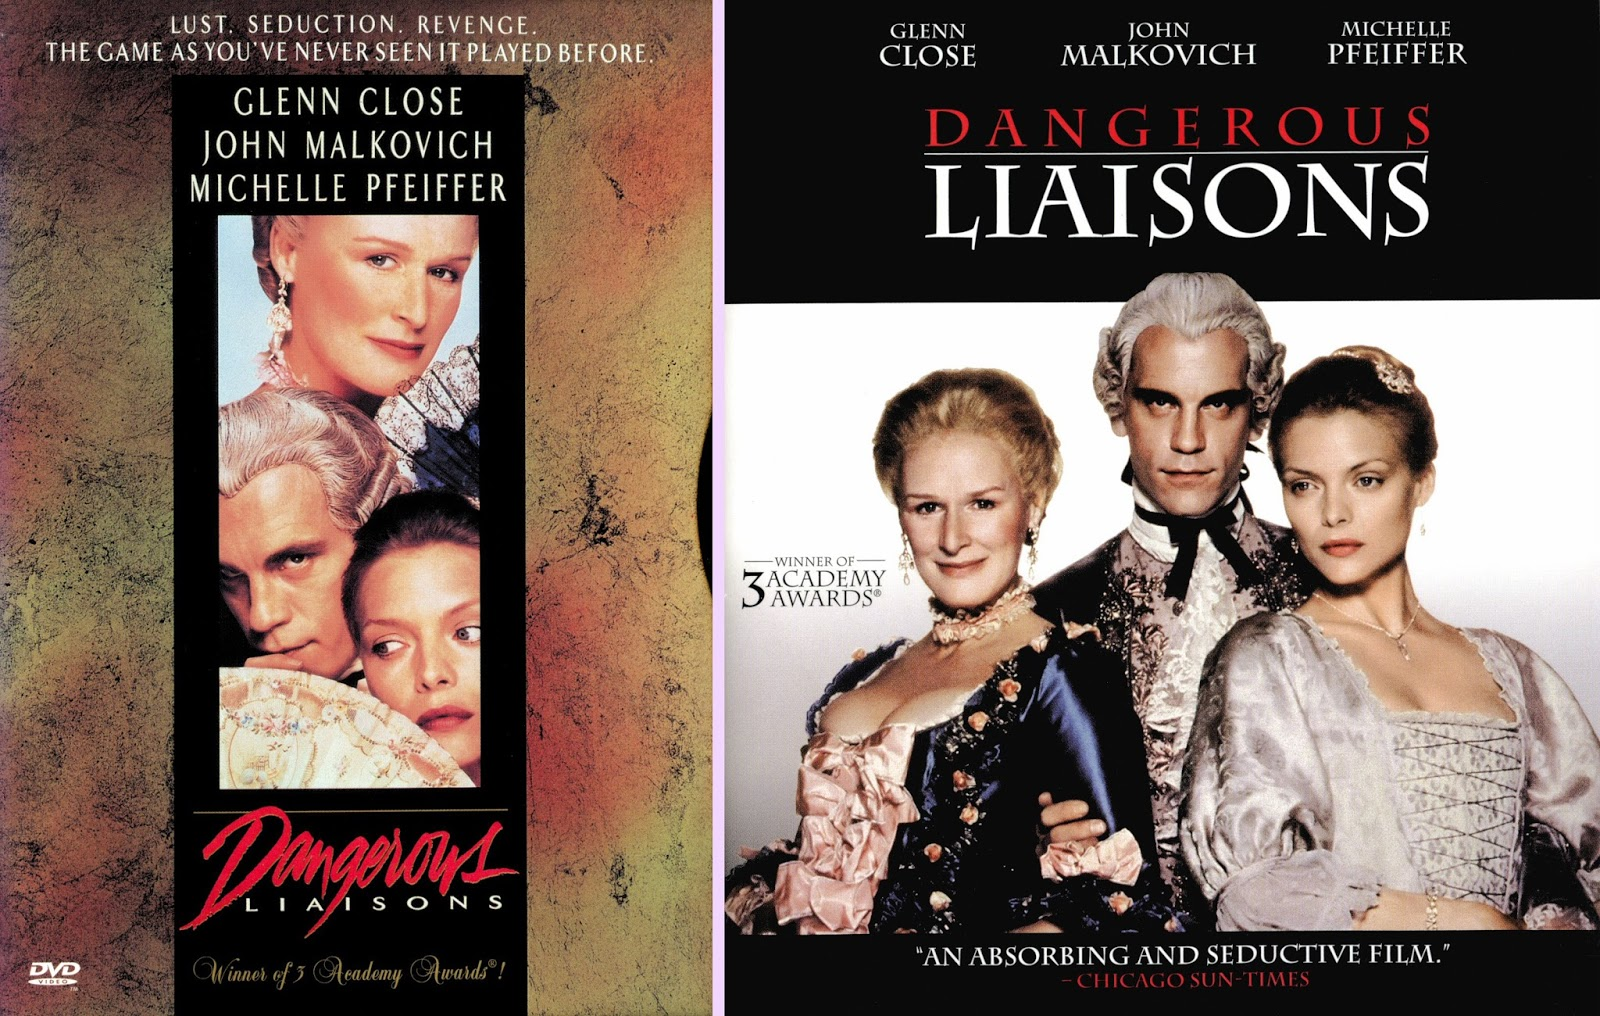 a comparison of cruel intentions and dangerous liasons Dangerous games of love in the films cruel intentions versus dangerous liaisons would you like to play a game this game involves passion, deceit, lies, and love.